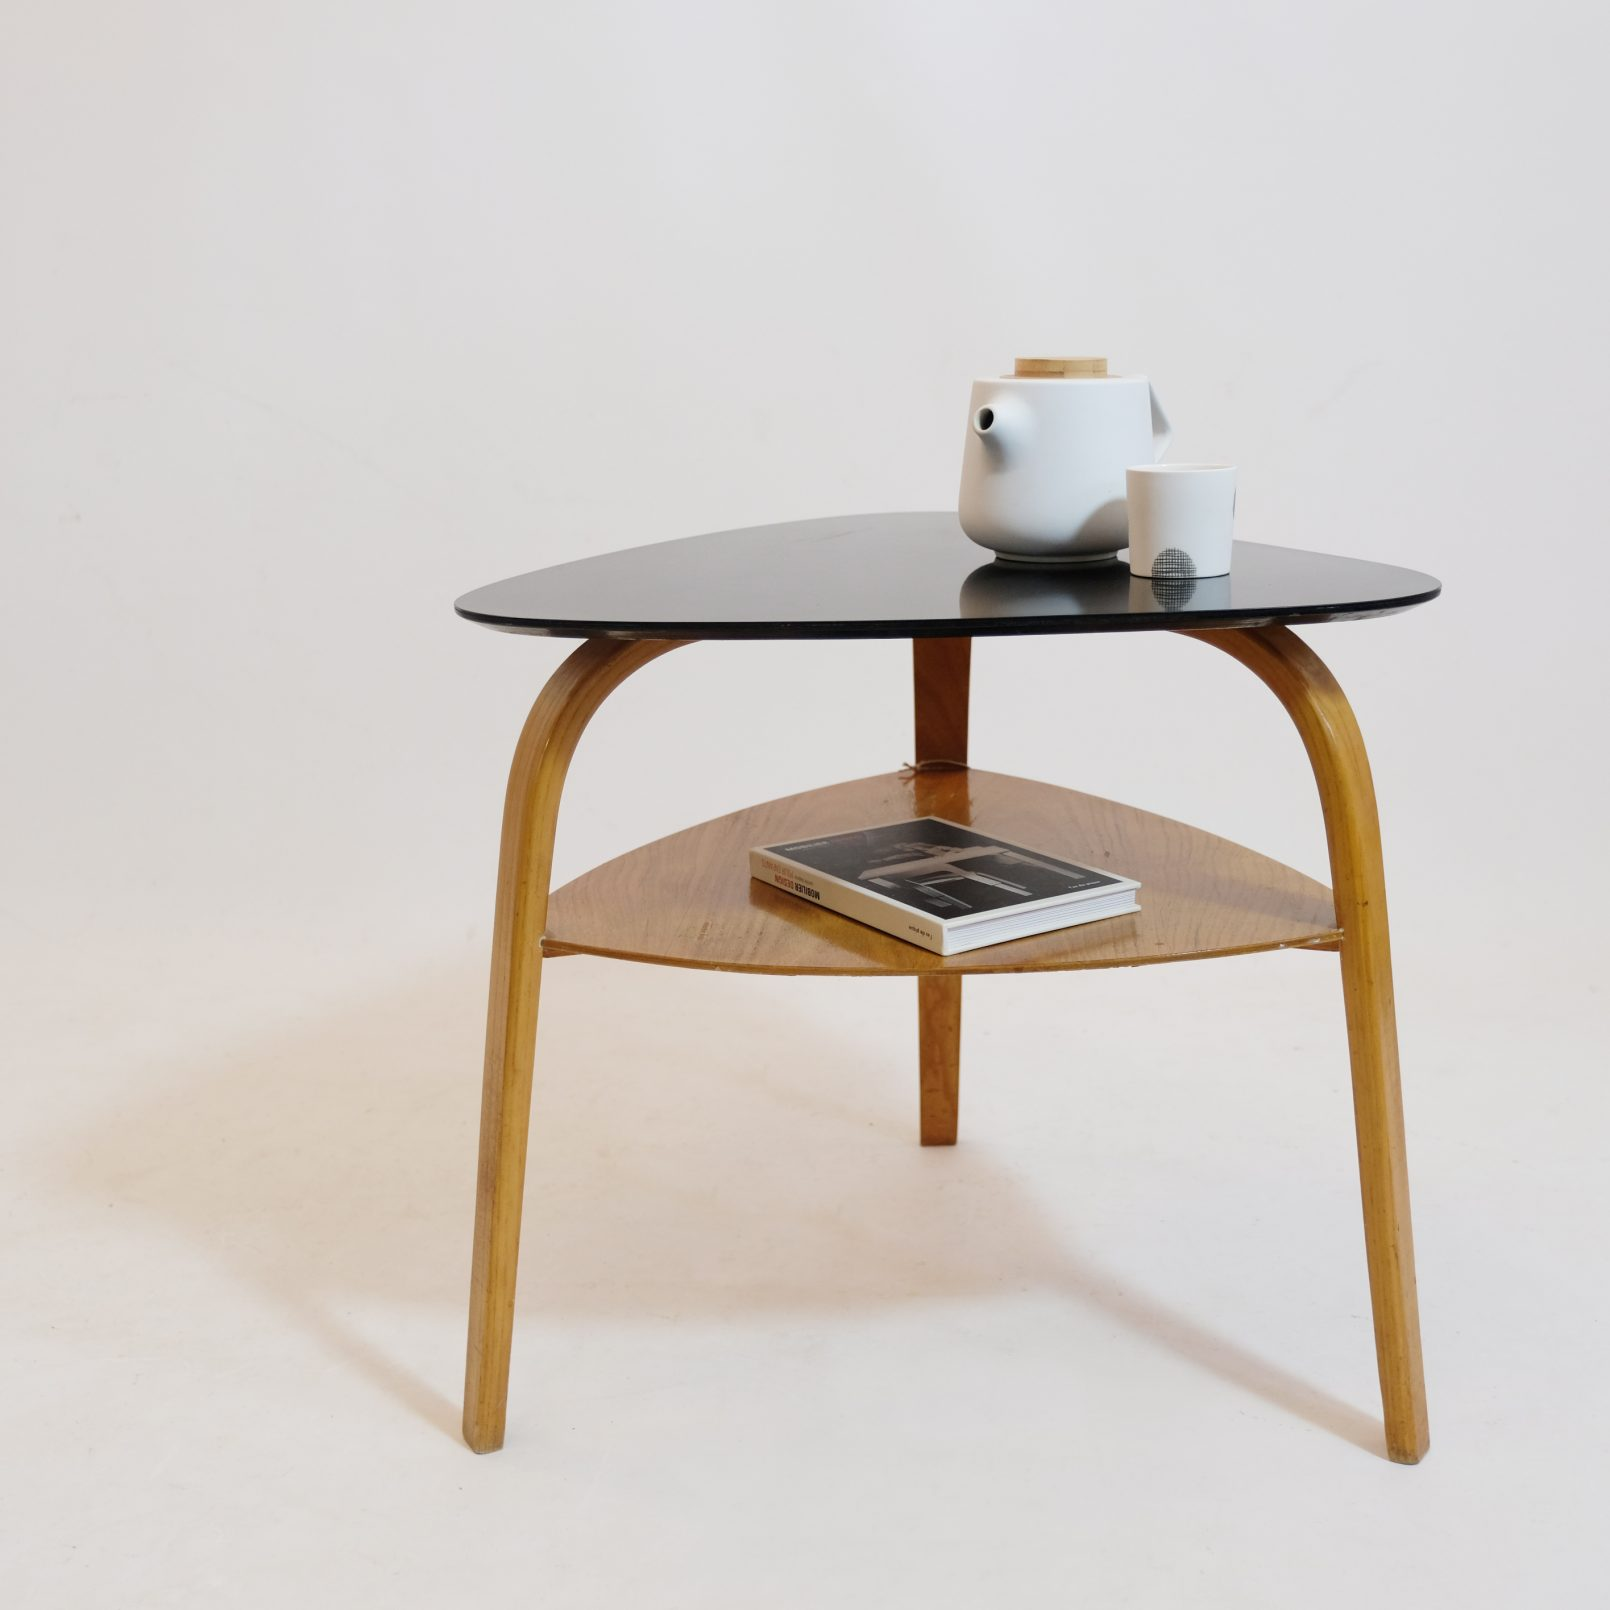 Side table by Steiner, 1950s.